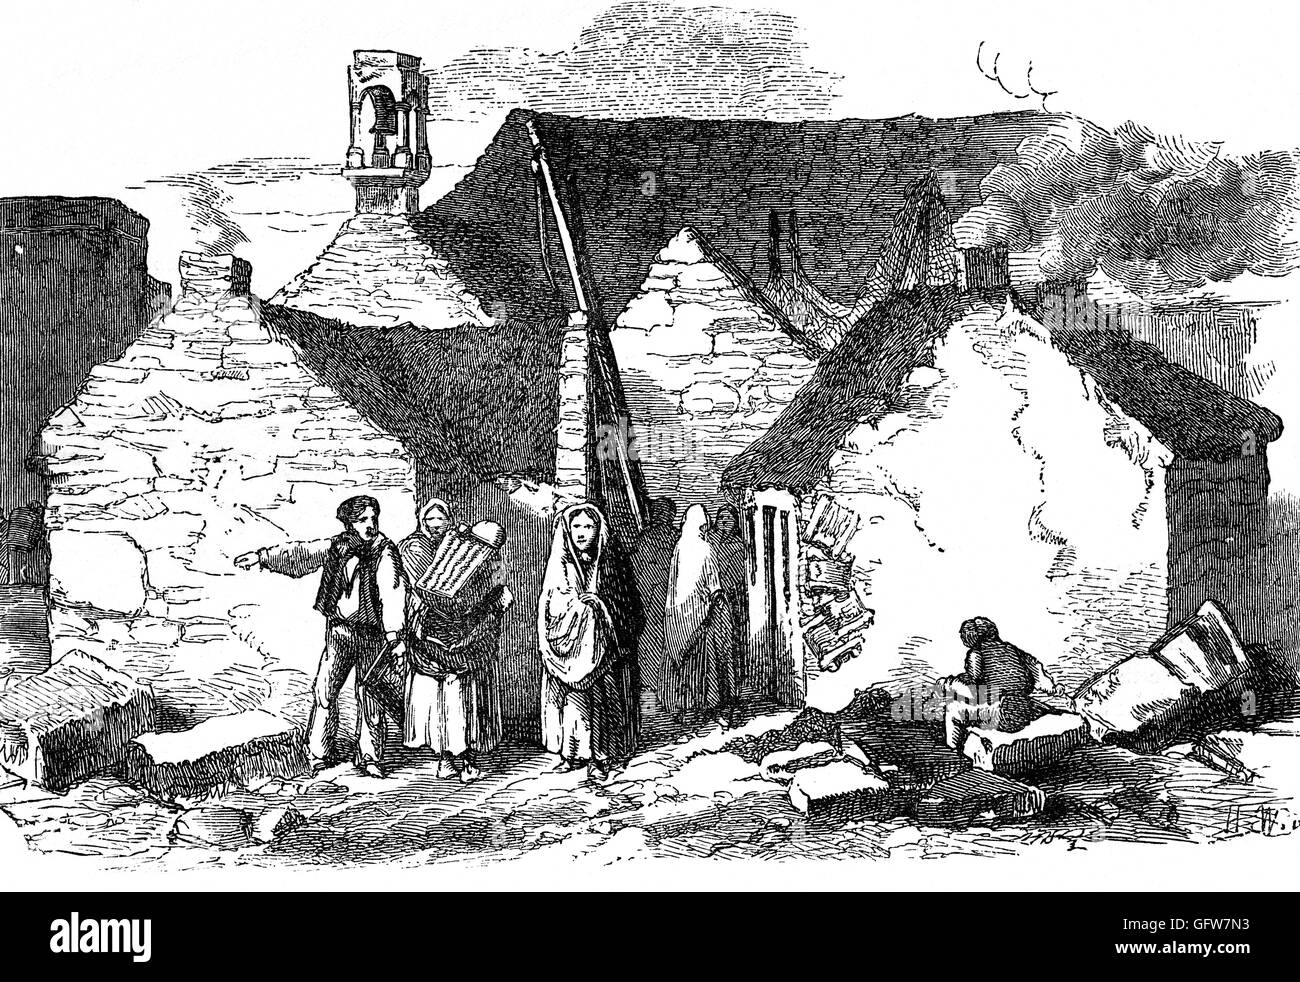 Peasant cottages on the west coast of Ireland in 1835 when policies on corn was beginning to create greater poverty. - Stock Image